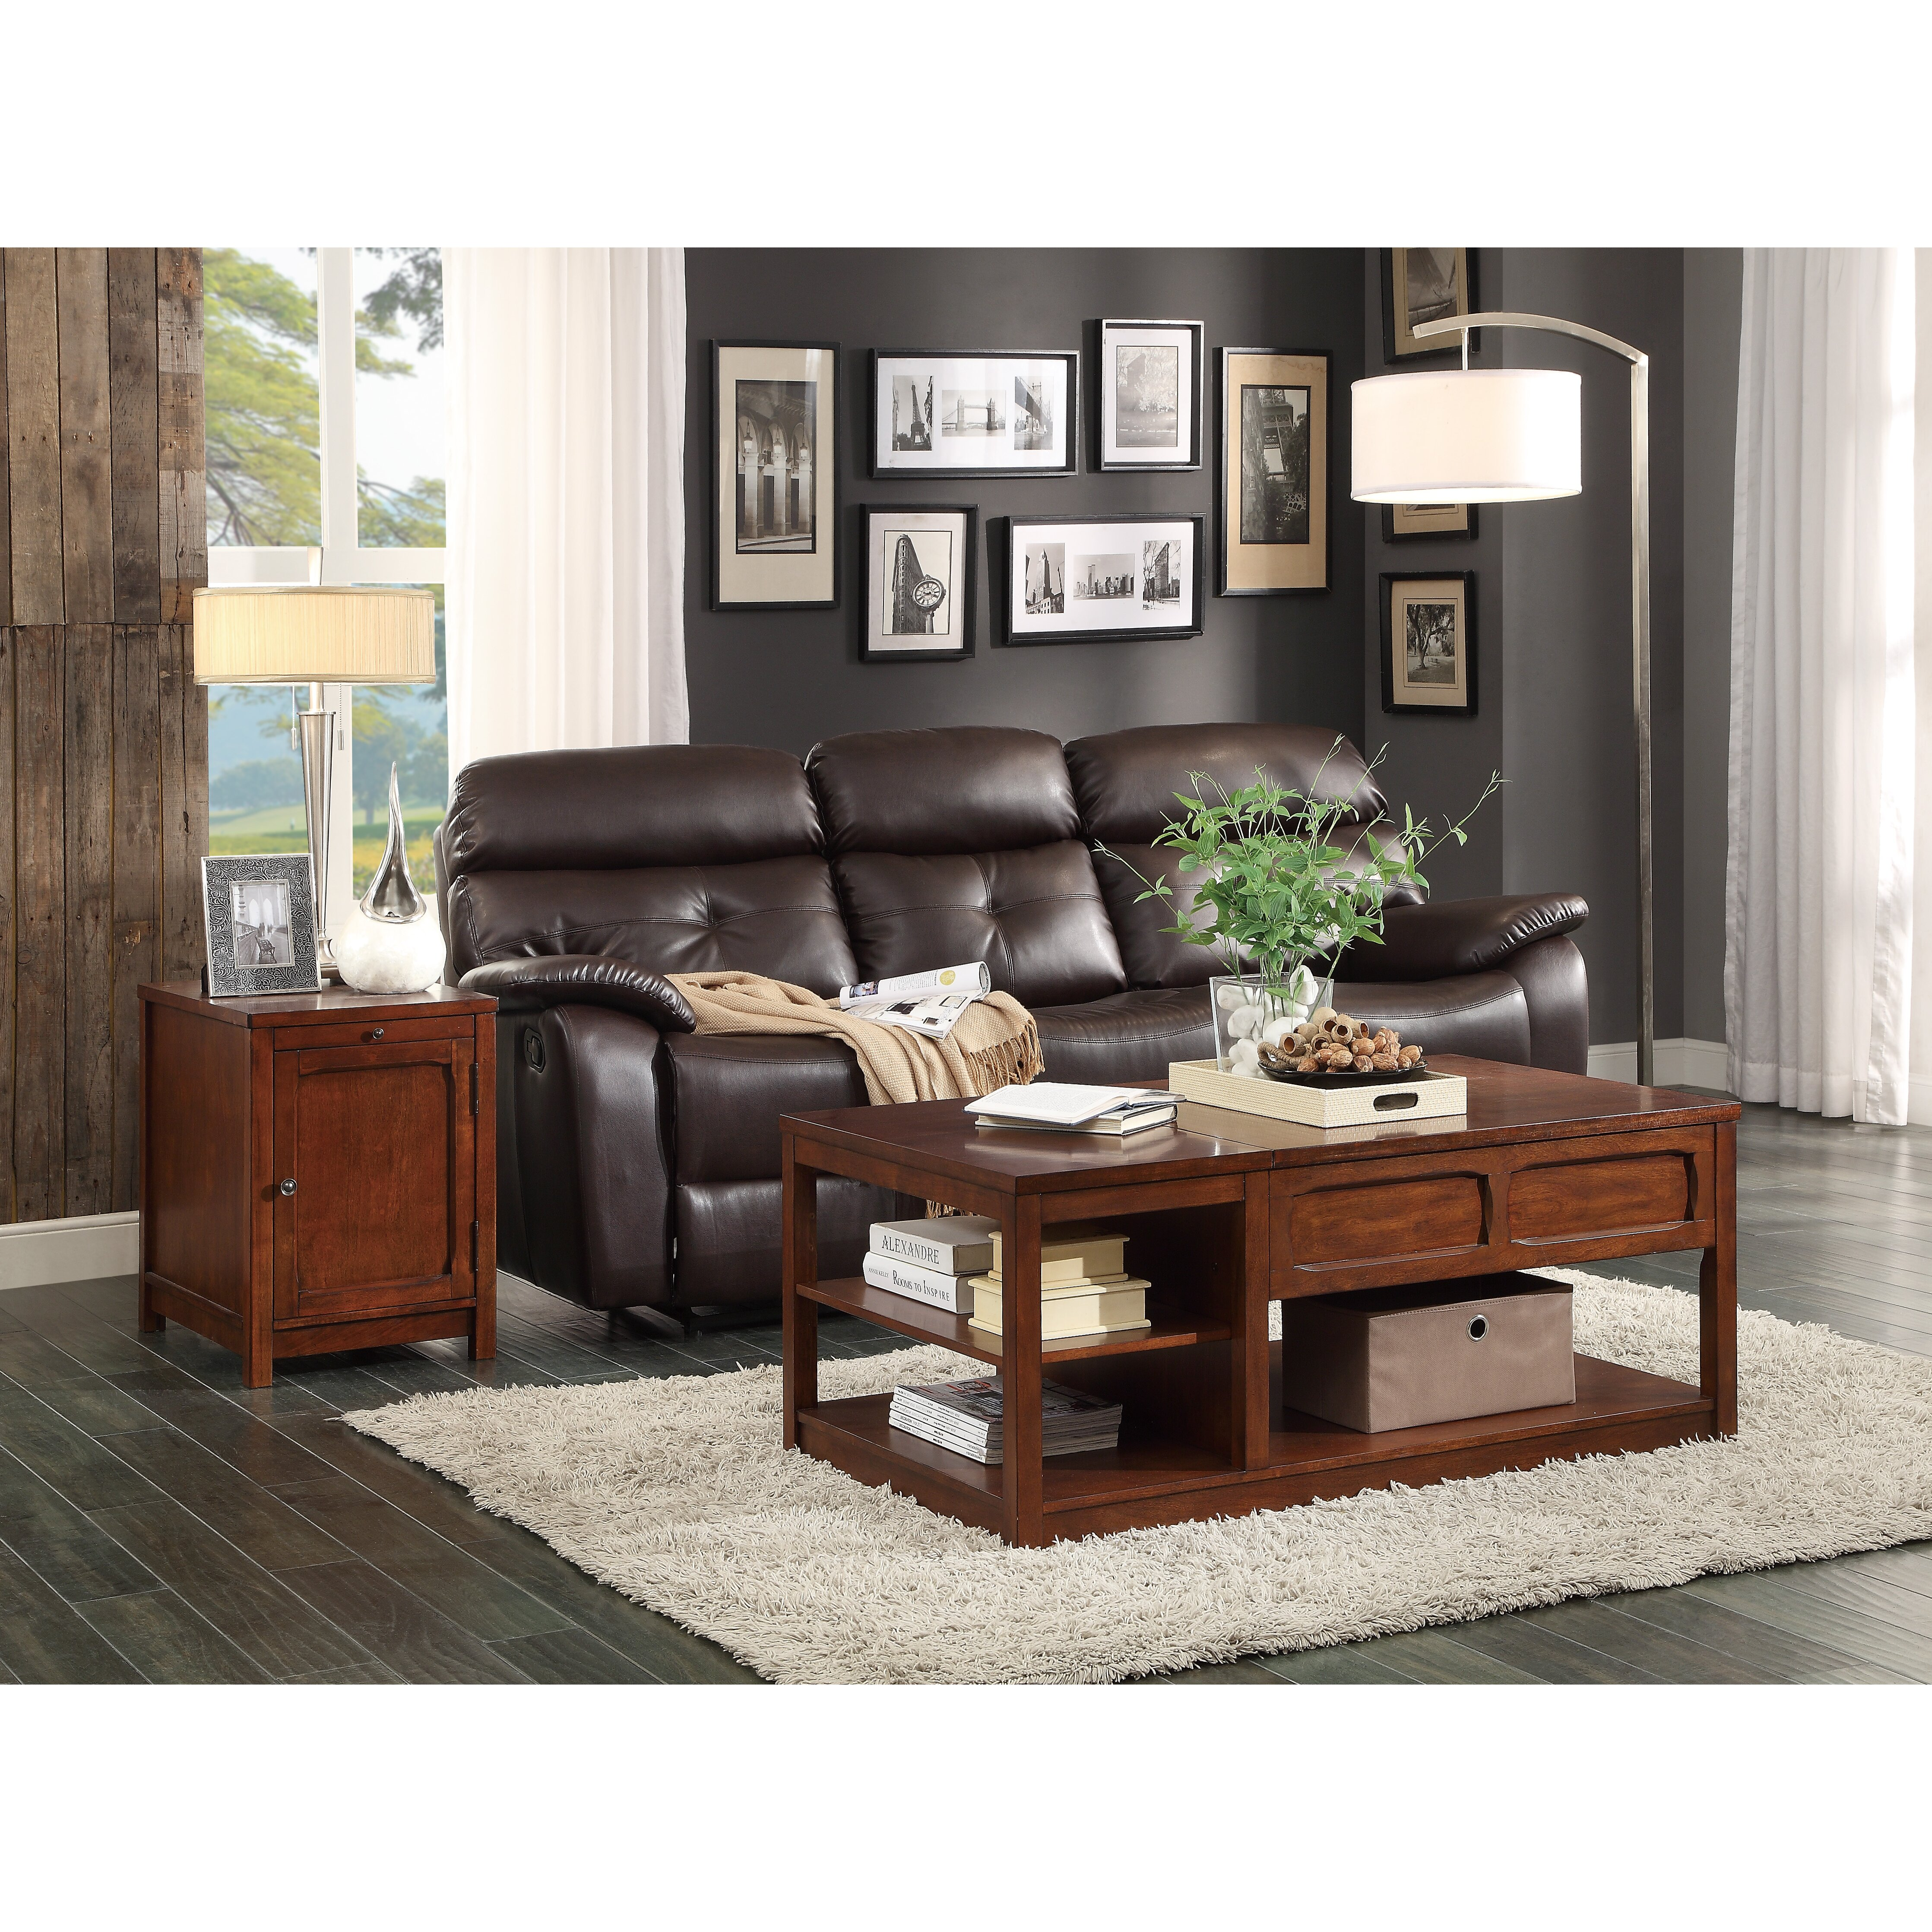 Woodhaven Hill Booker Coffee Table With Lift Top Reviews Wayfair